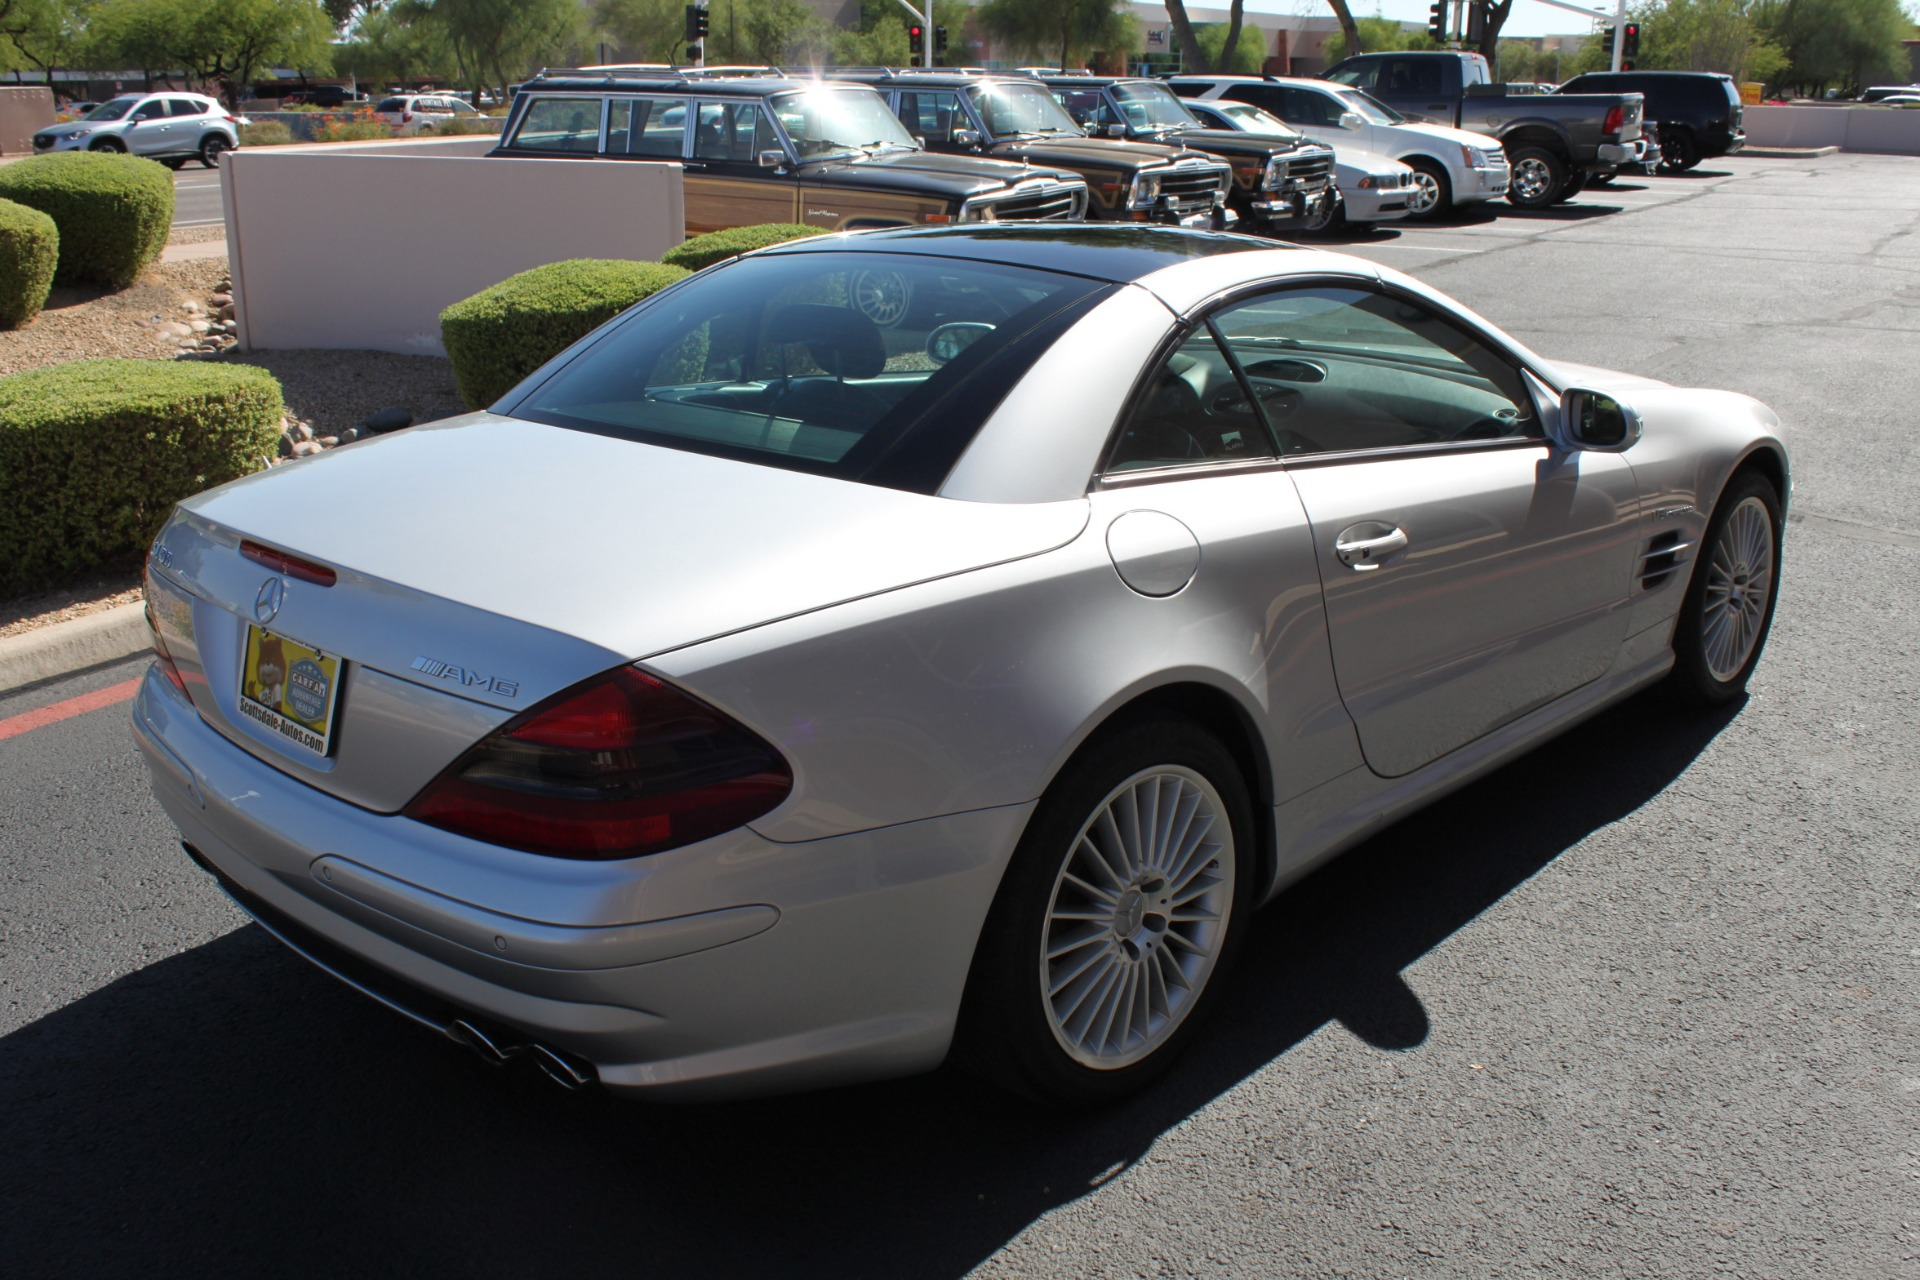 Used-2003-Mercedes-Benz-SL-Class-AMG-Acura